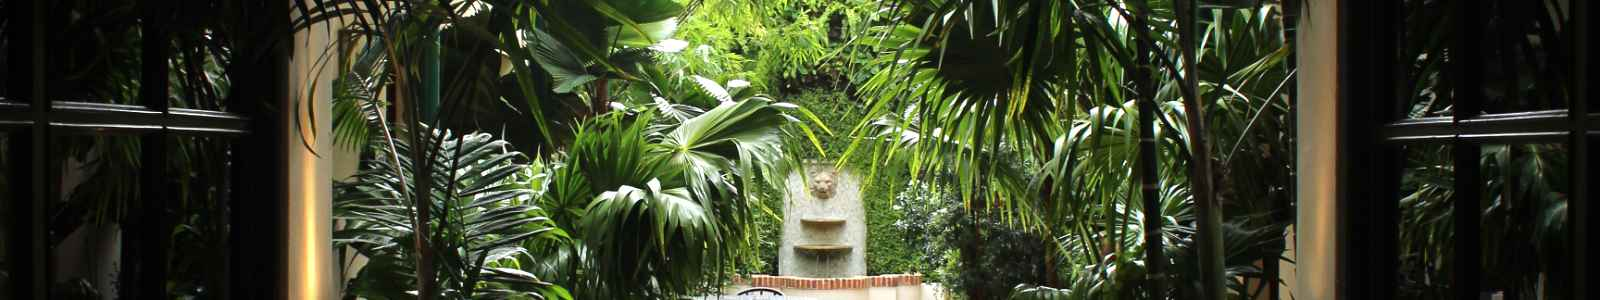 image of a shady garden full of palms with a fountain in the background